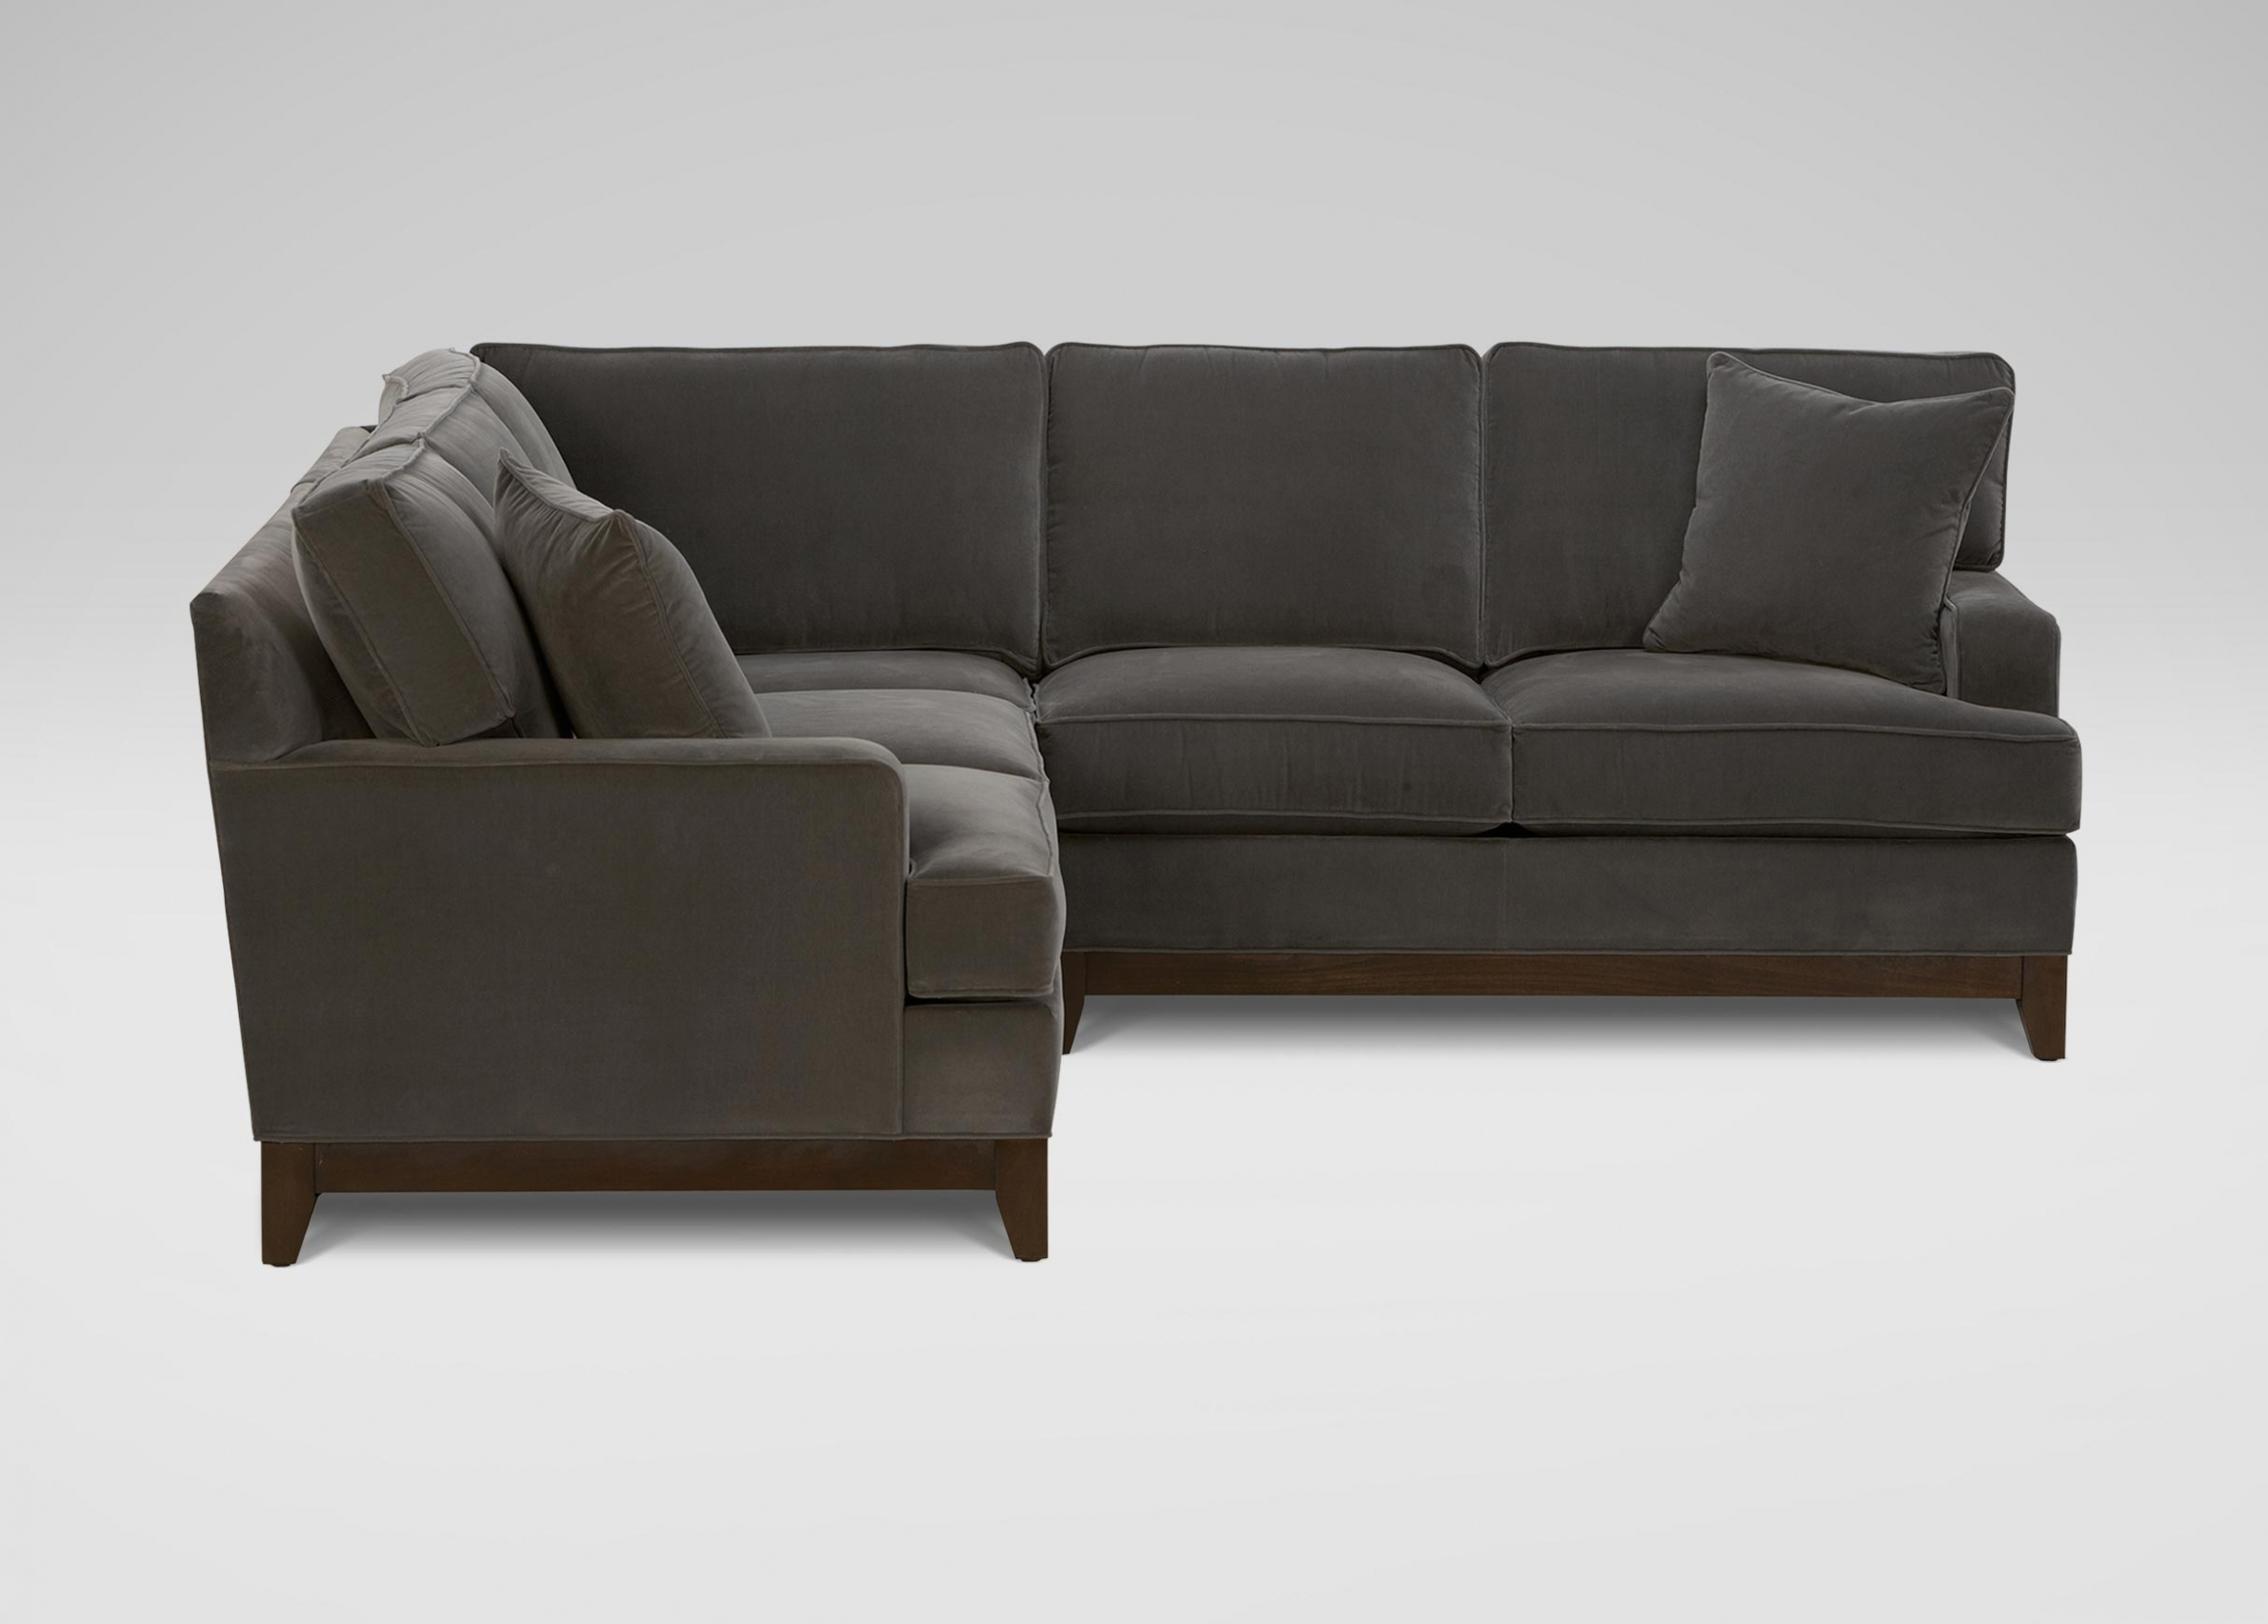 Sofa: Ethan Allen Sectional Sofa Arcata Sectionals | Thedailygraff For Sectional Sofas At Ethan Allen (View 7 of 10)